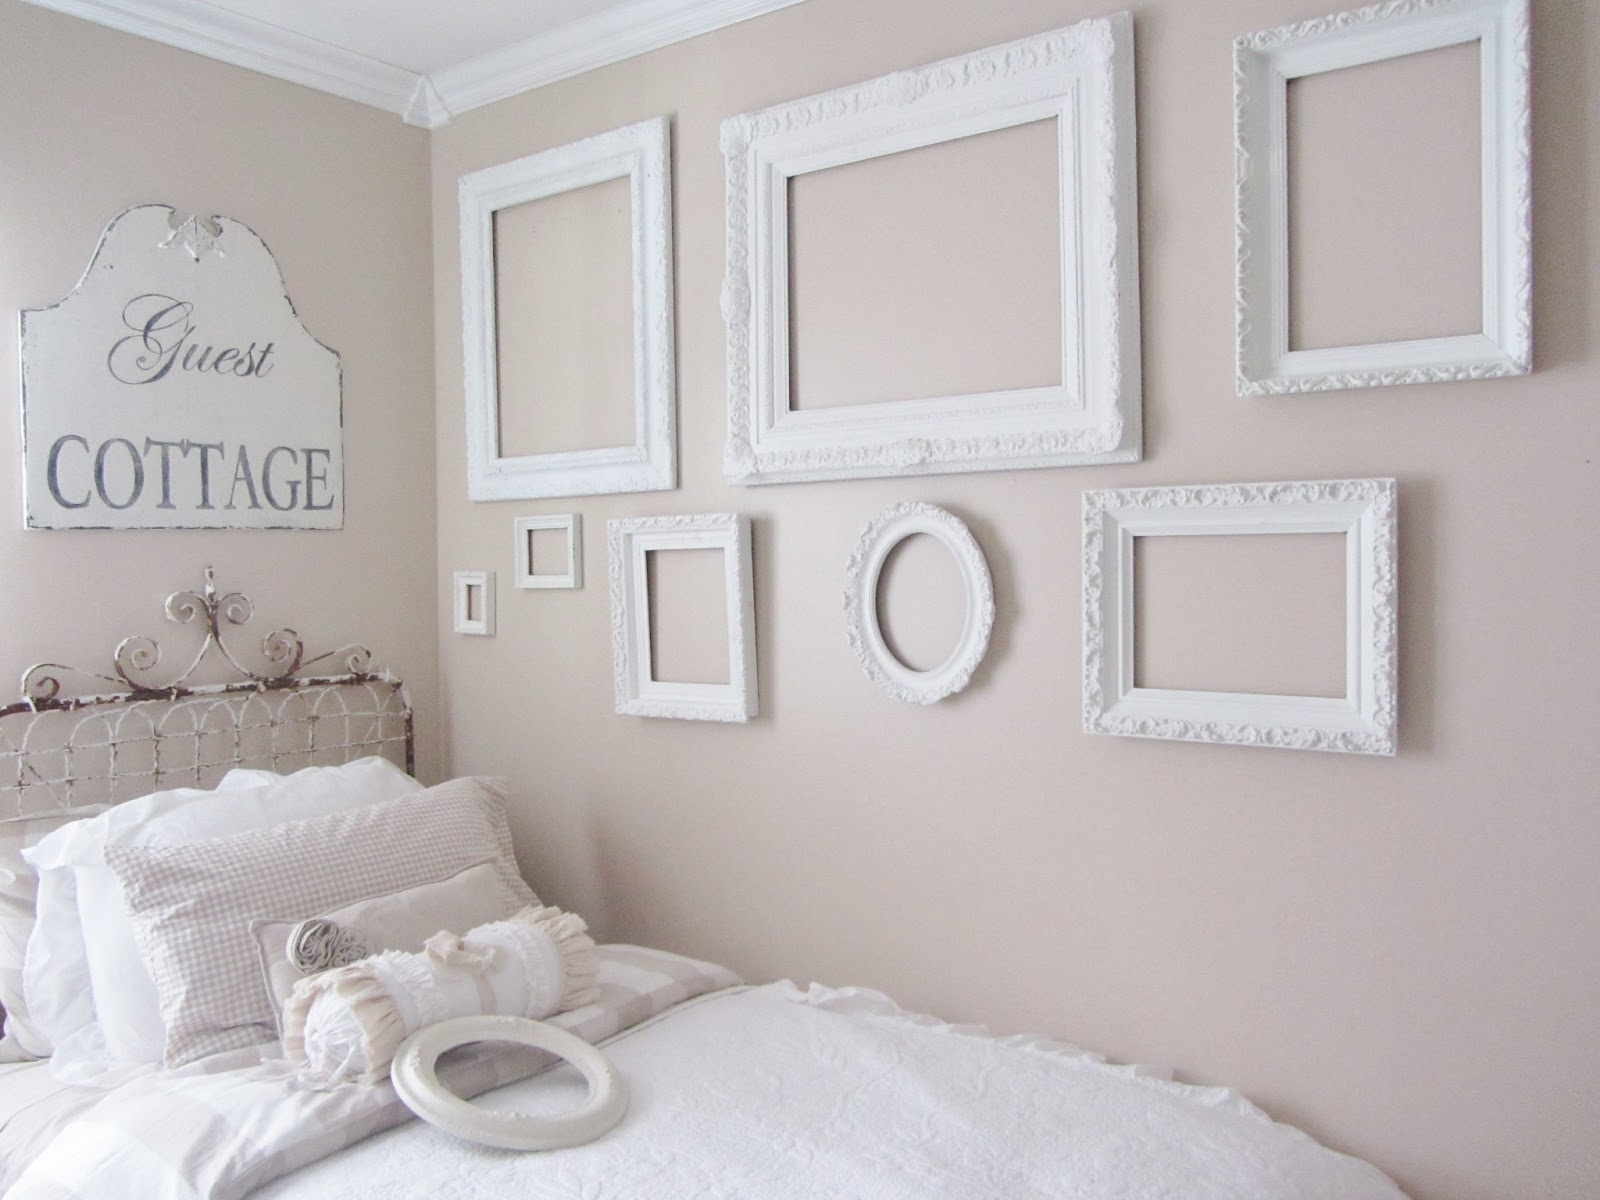 Empty Frames For Wall Decor : Junk chic cottage